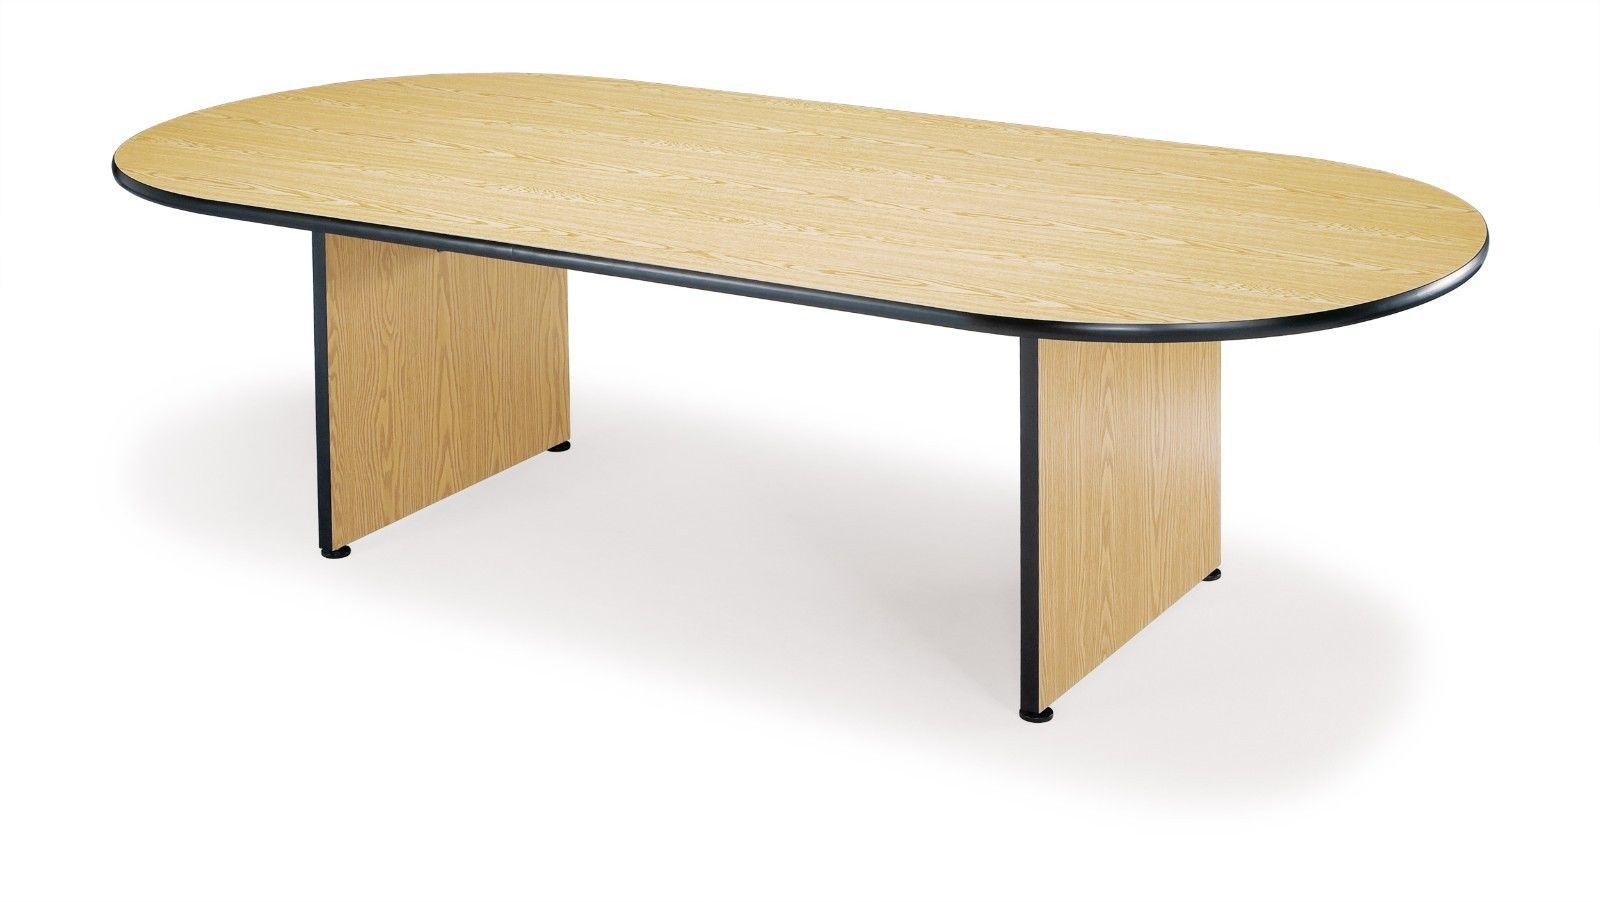 "#9 - OFM Racetrack Style Conference Table w/ Laminated Table Top and Oak Color Finish 48"" x 96"""